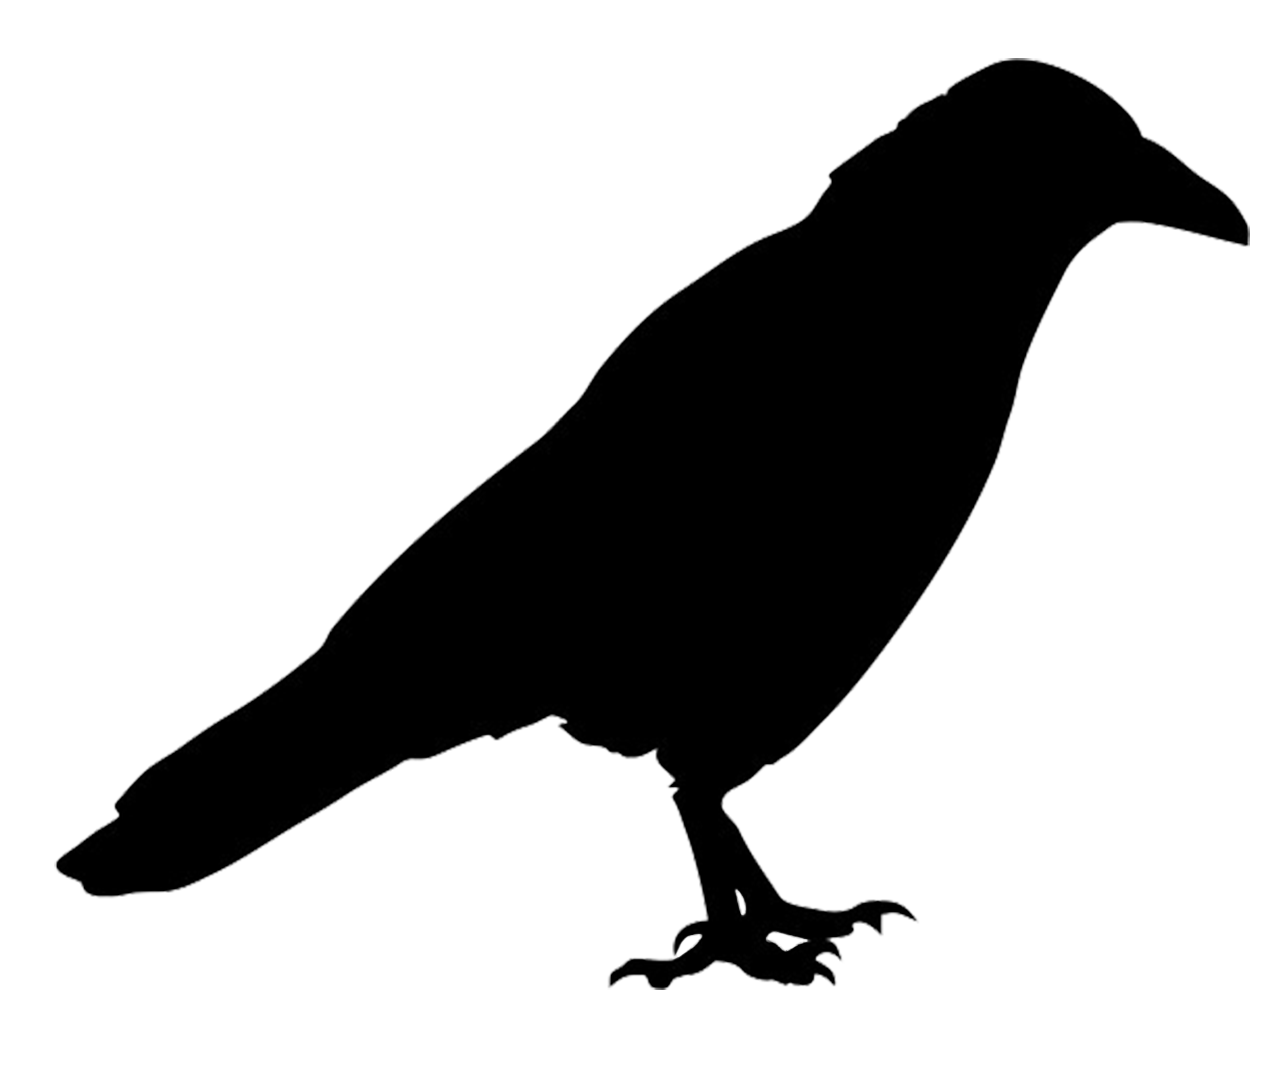 It is an image of Irresistible Printable Hawk Silhouette for Window